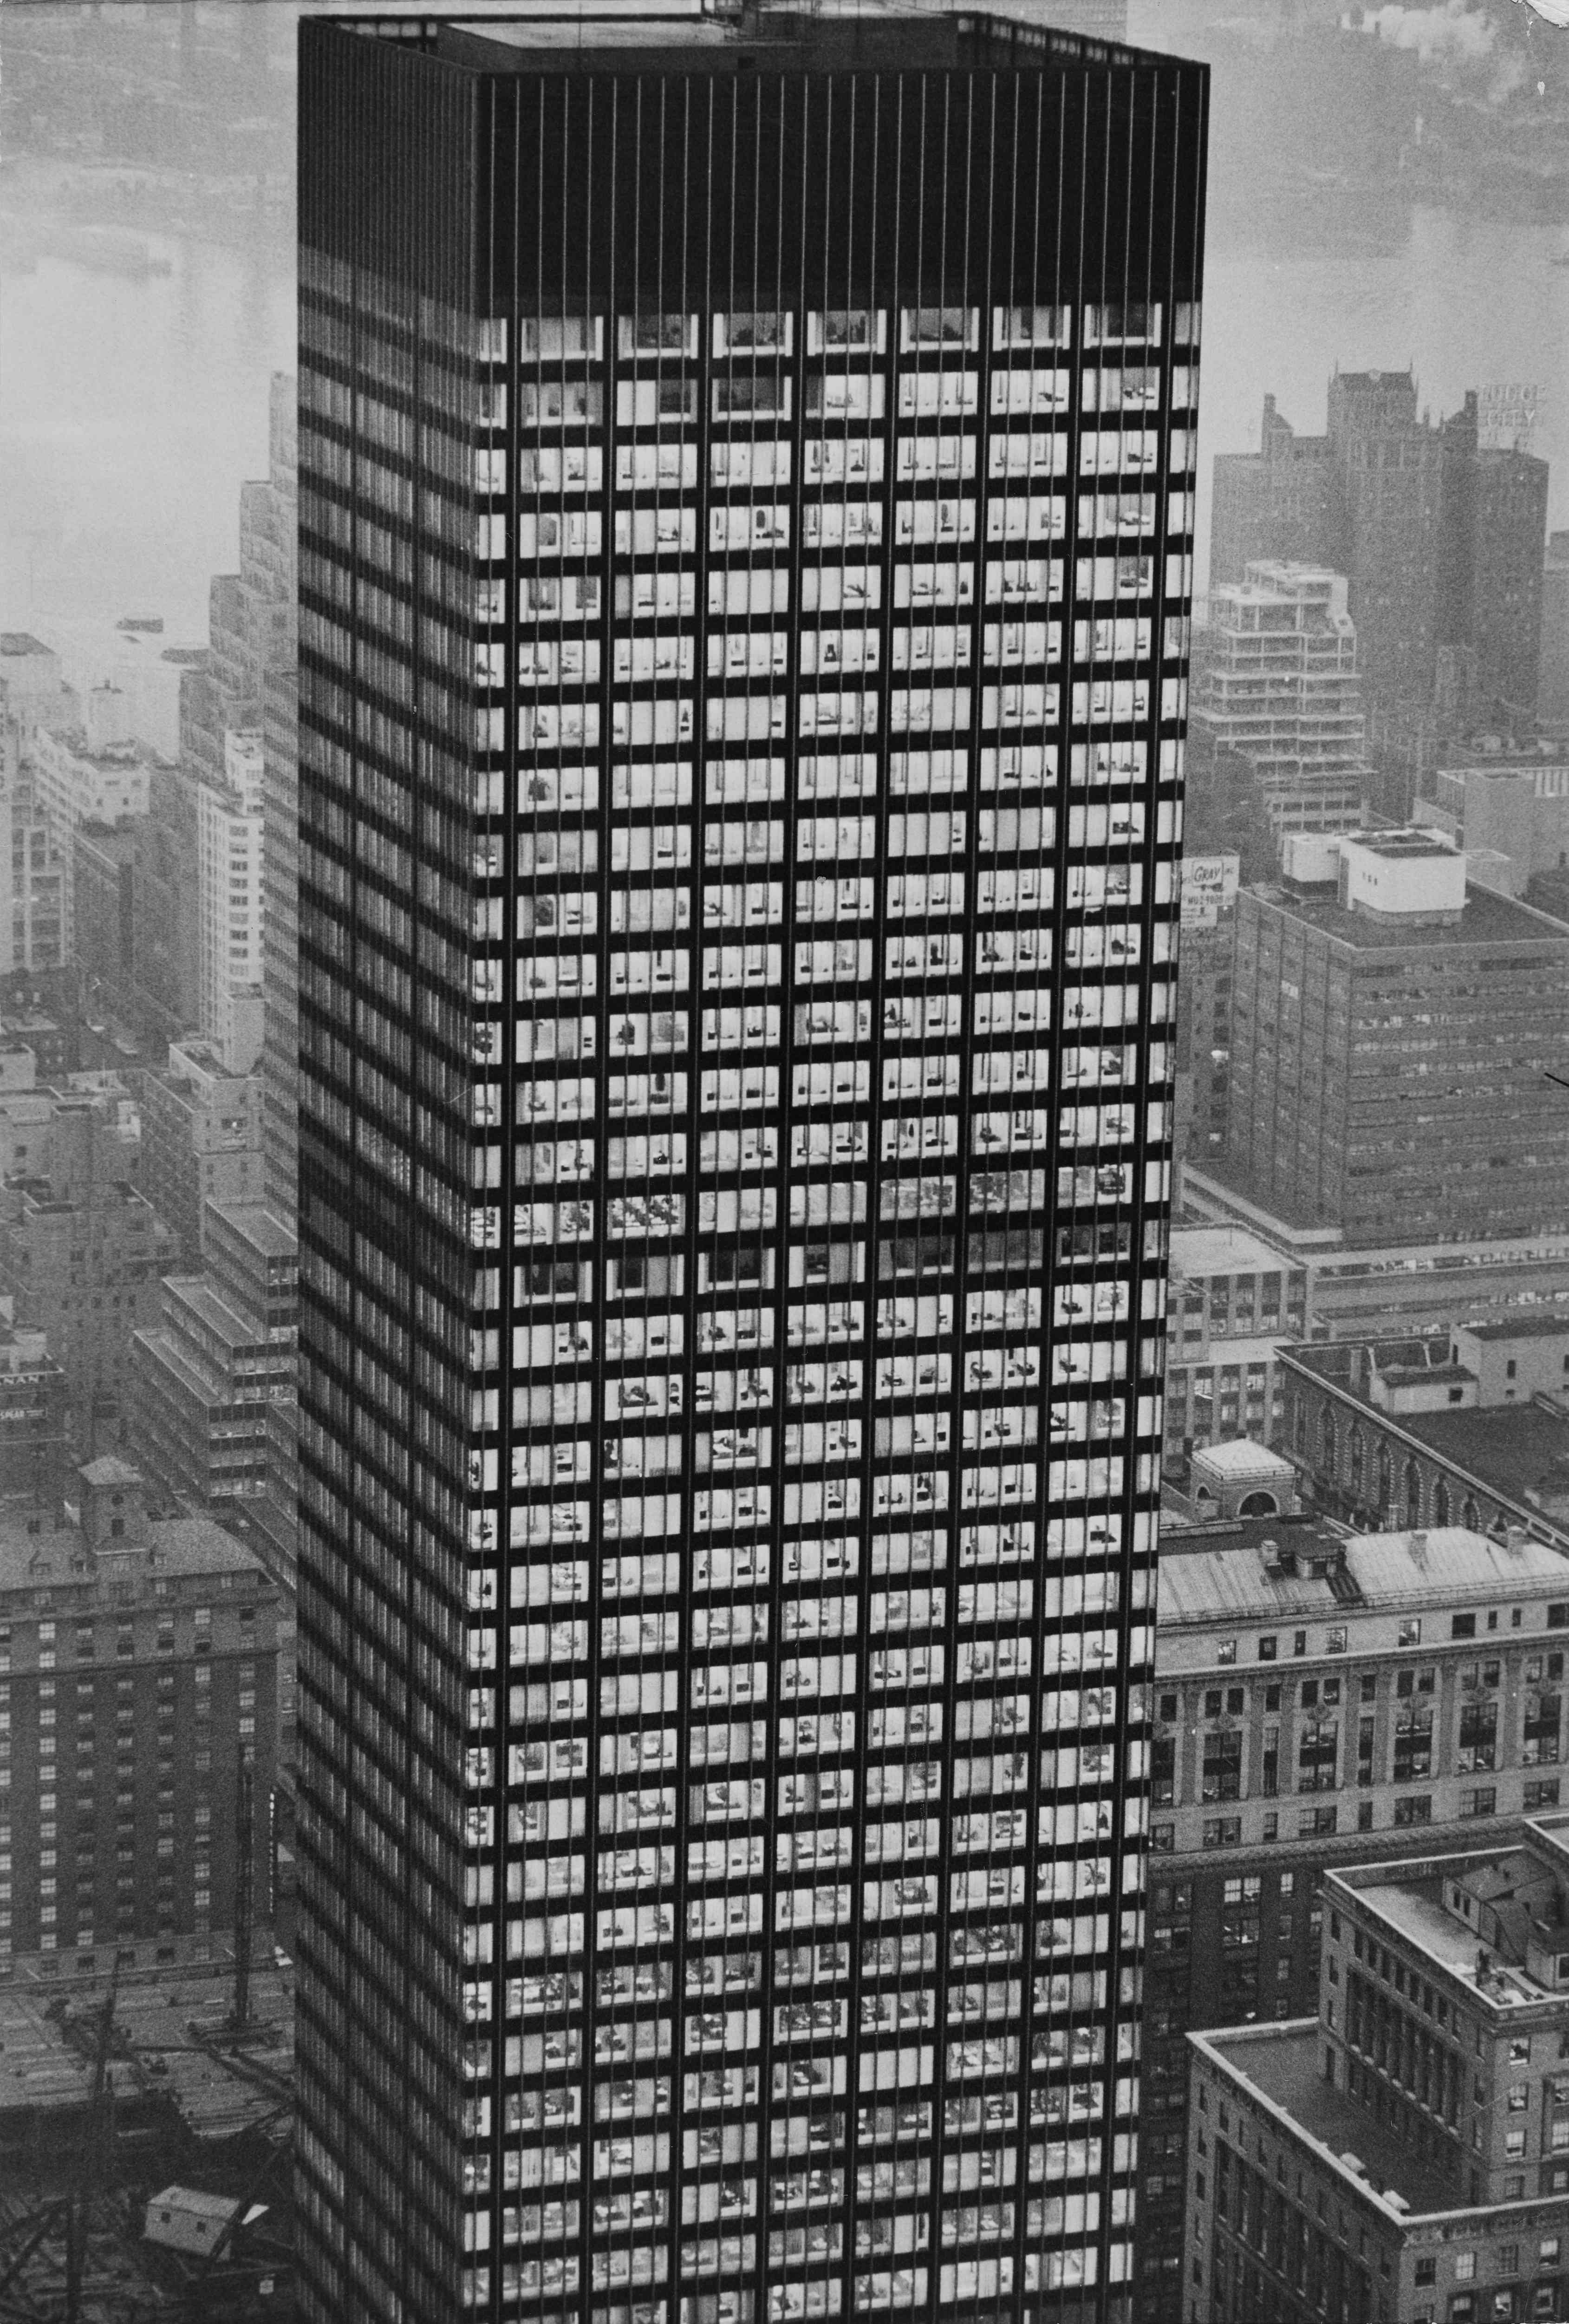 270 Park Avenue, also known as the JPMorgan Chase Tower and formerly the Union Carbide Building